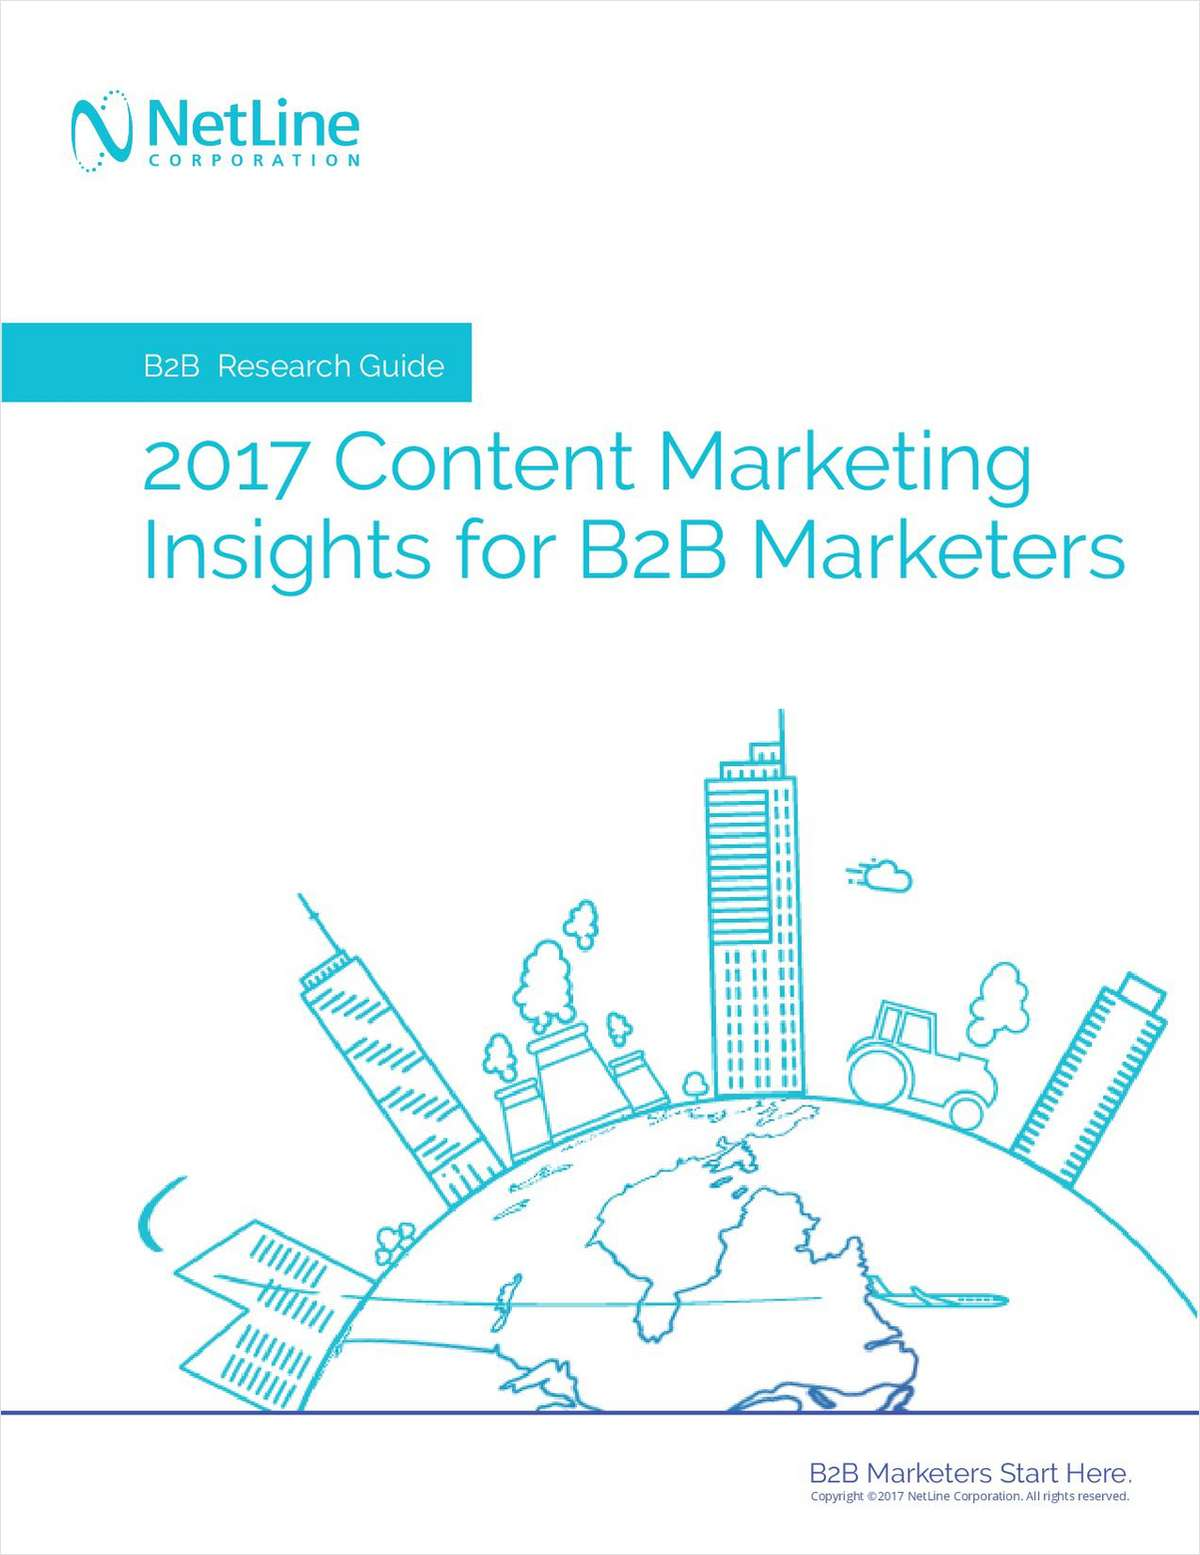 2017 Content Marketing Insights for B2B Marketers